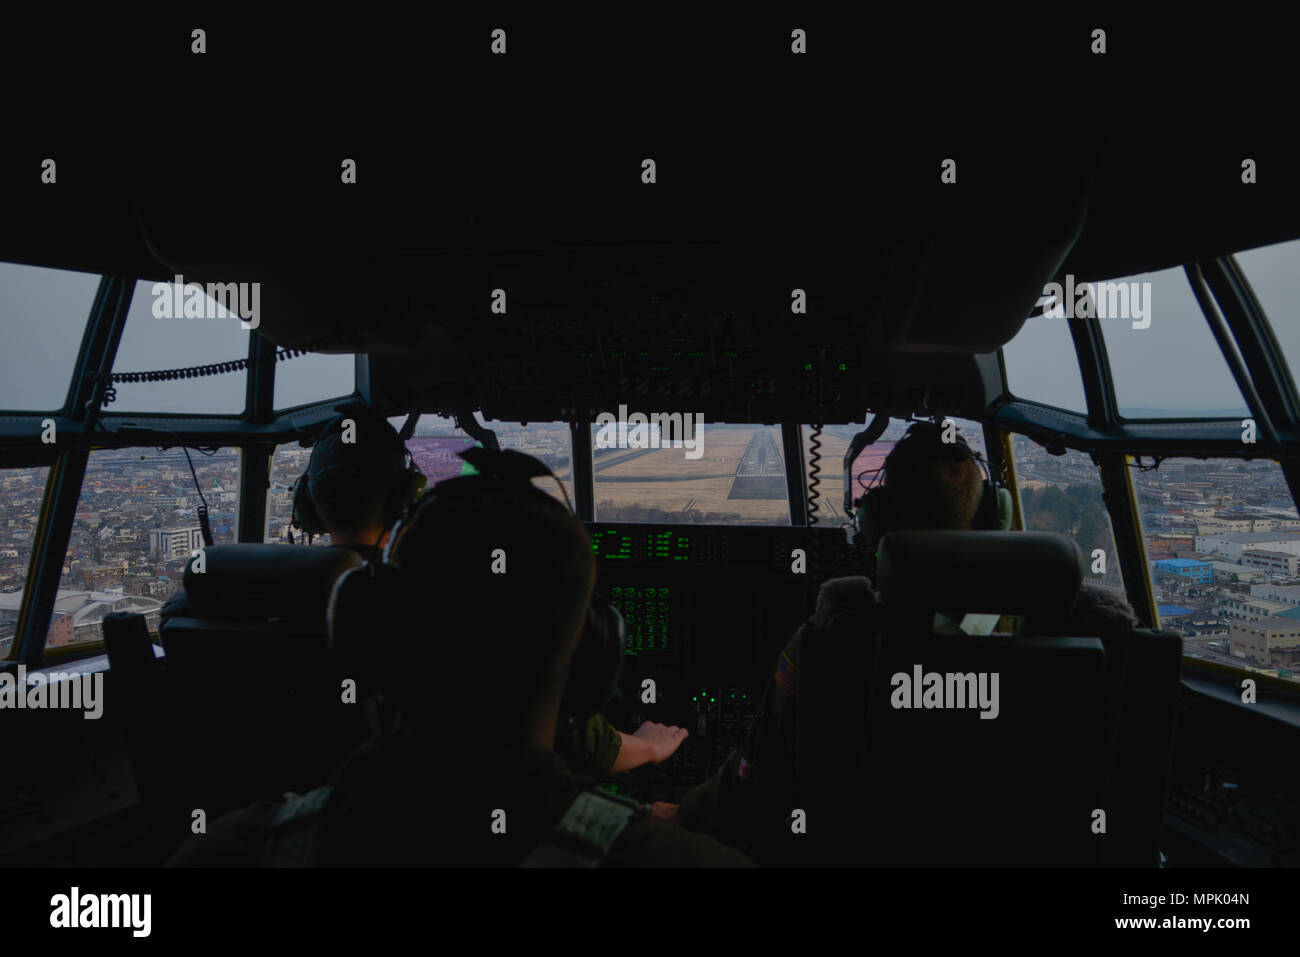 Crew members of the 36th Airlift Squadron approach the runway at Yokota Air Base, Japan, during the first Yokota C-130J Super Hercules training sortie March 20, 2017. The C-130J incorporates state-of-the-art technology to reduce manpower requirements, lower operating and support costs, and provide life-cycle cost savings over earlier C-130 models. (U.S. Air Force photo by Staff Sgt. David Owsianka) - Stock Image